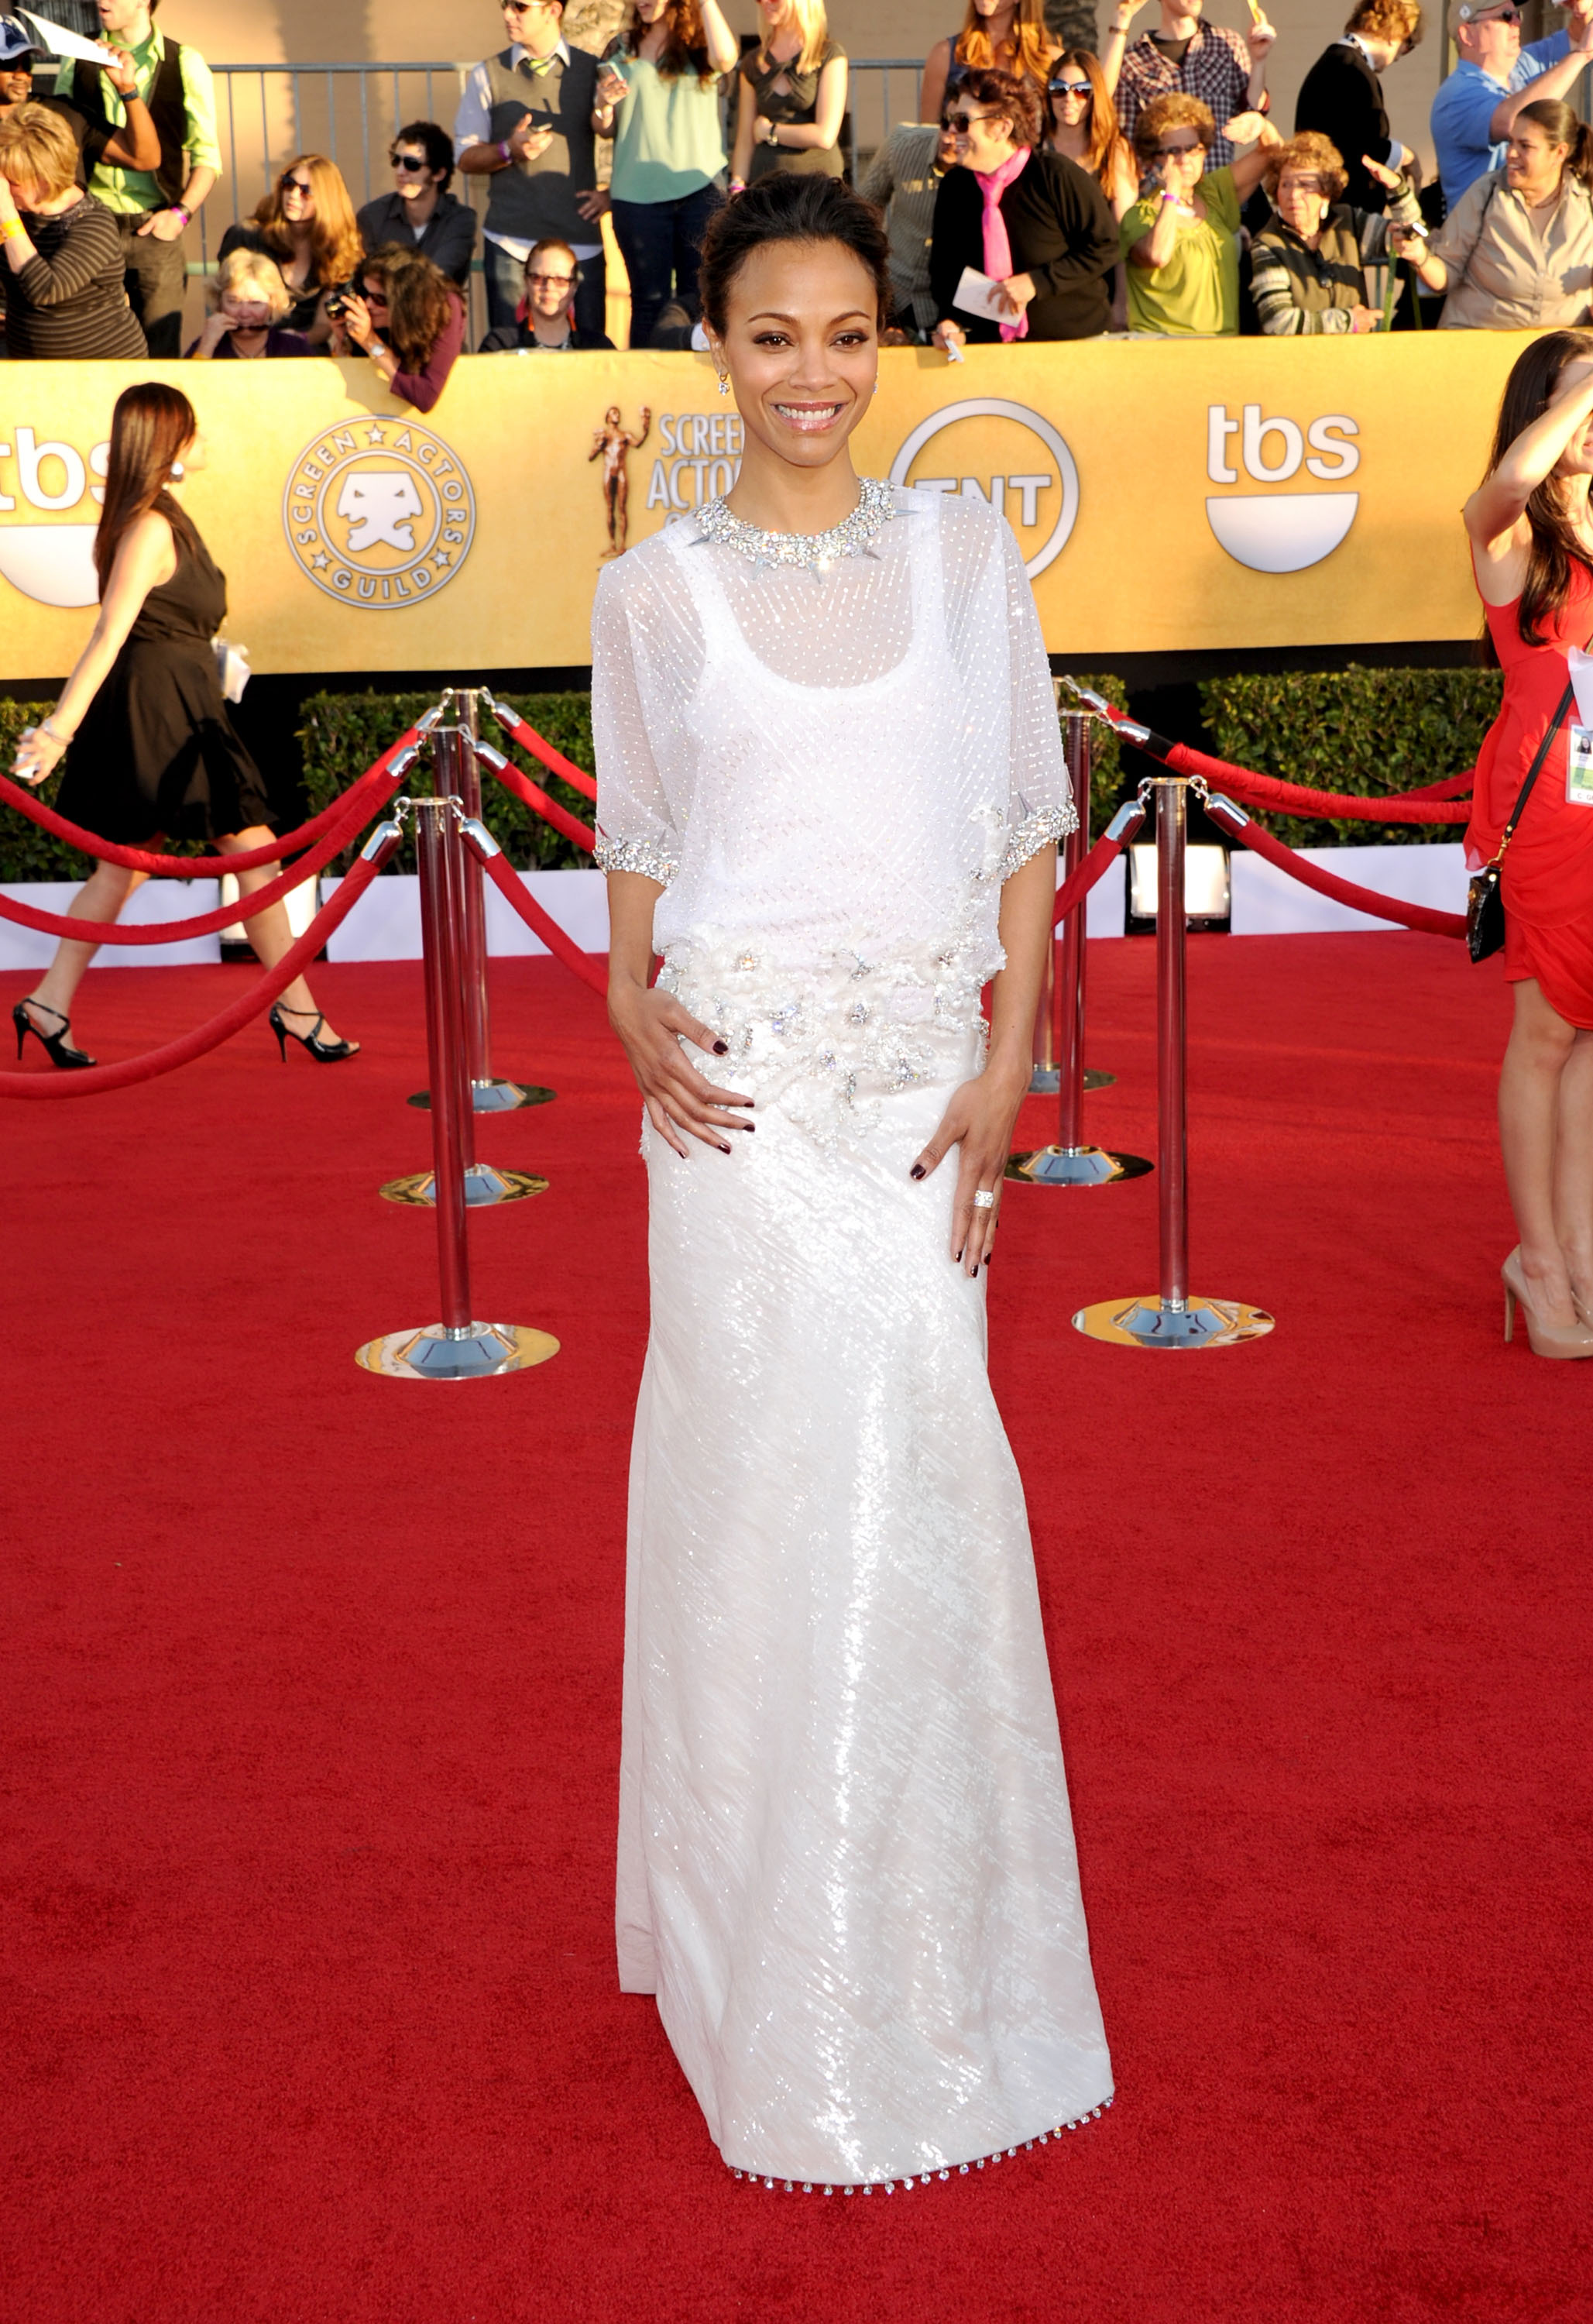 Zoe Saldana at the SAG Awards